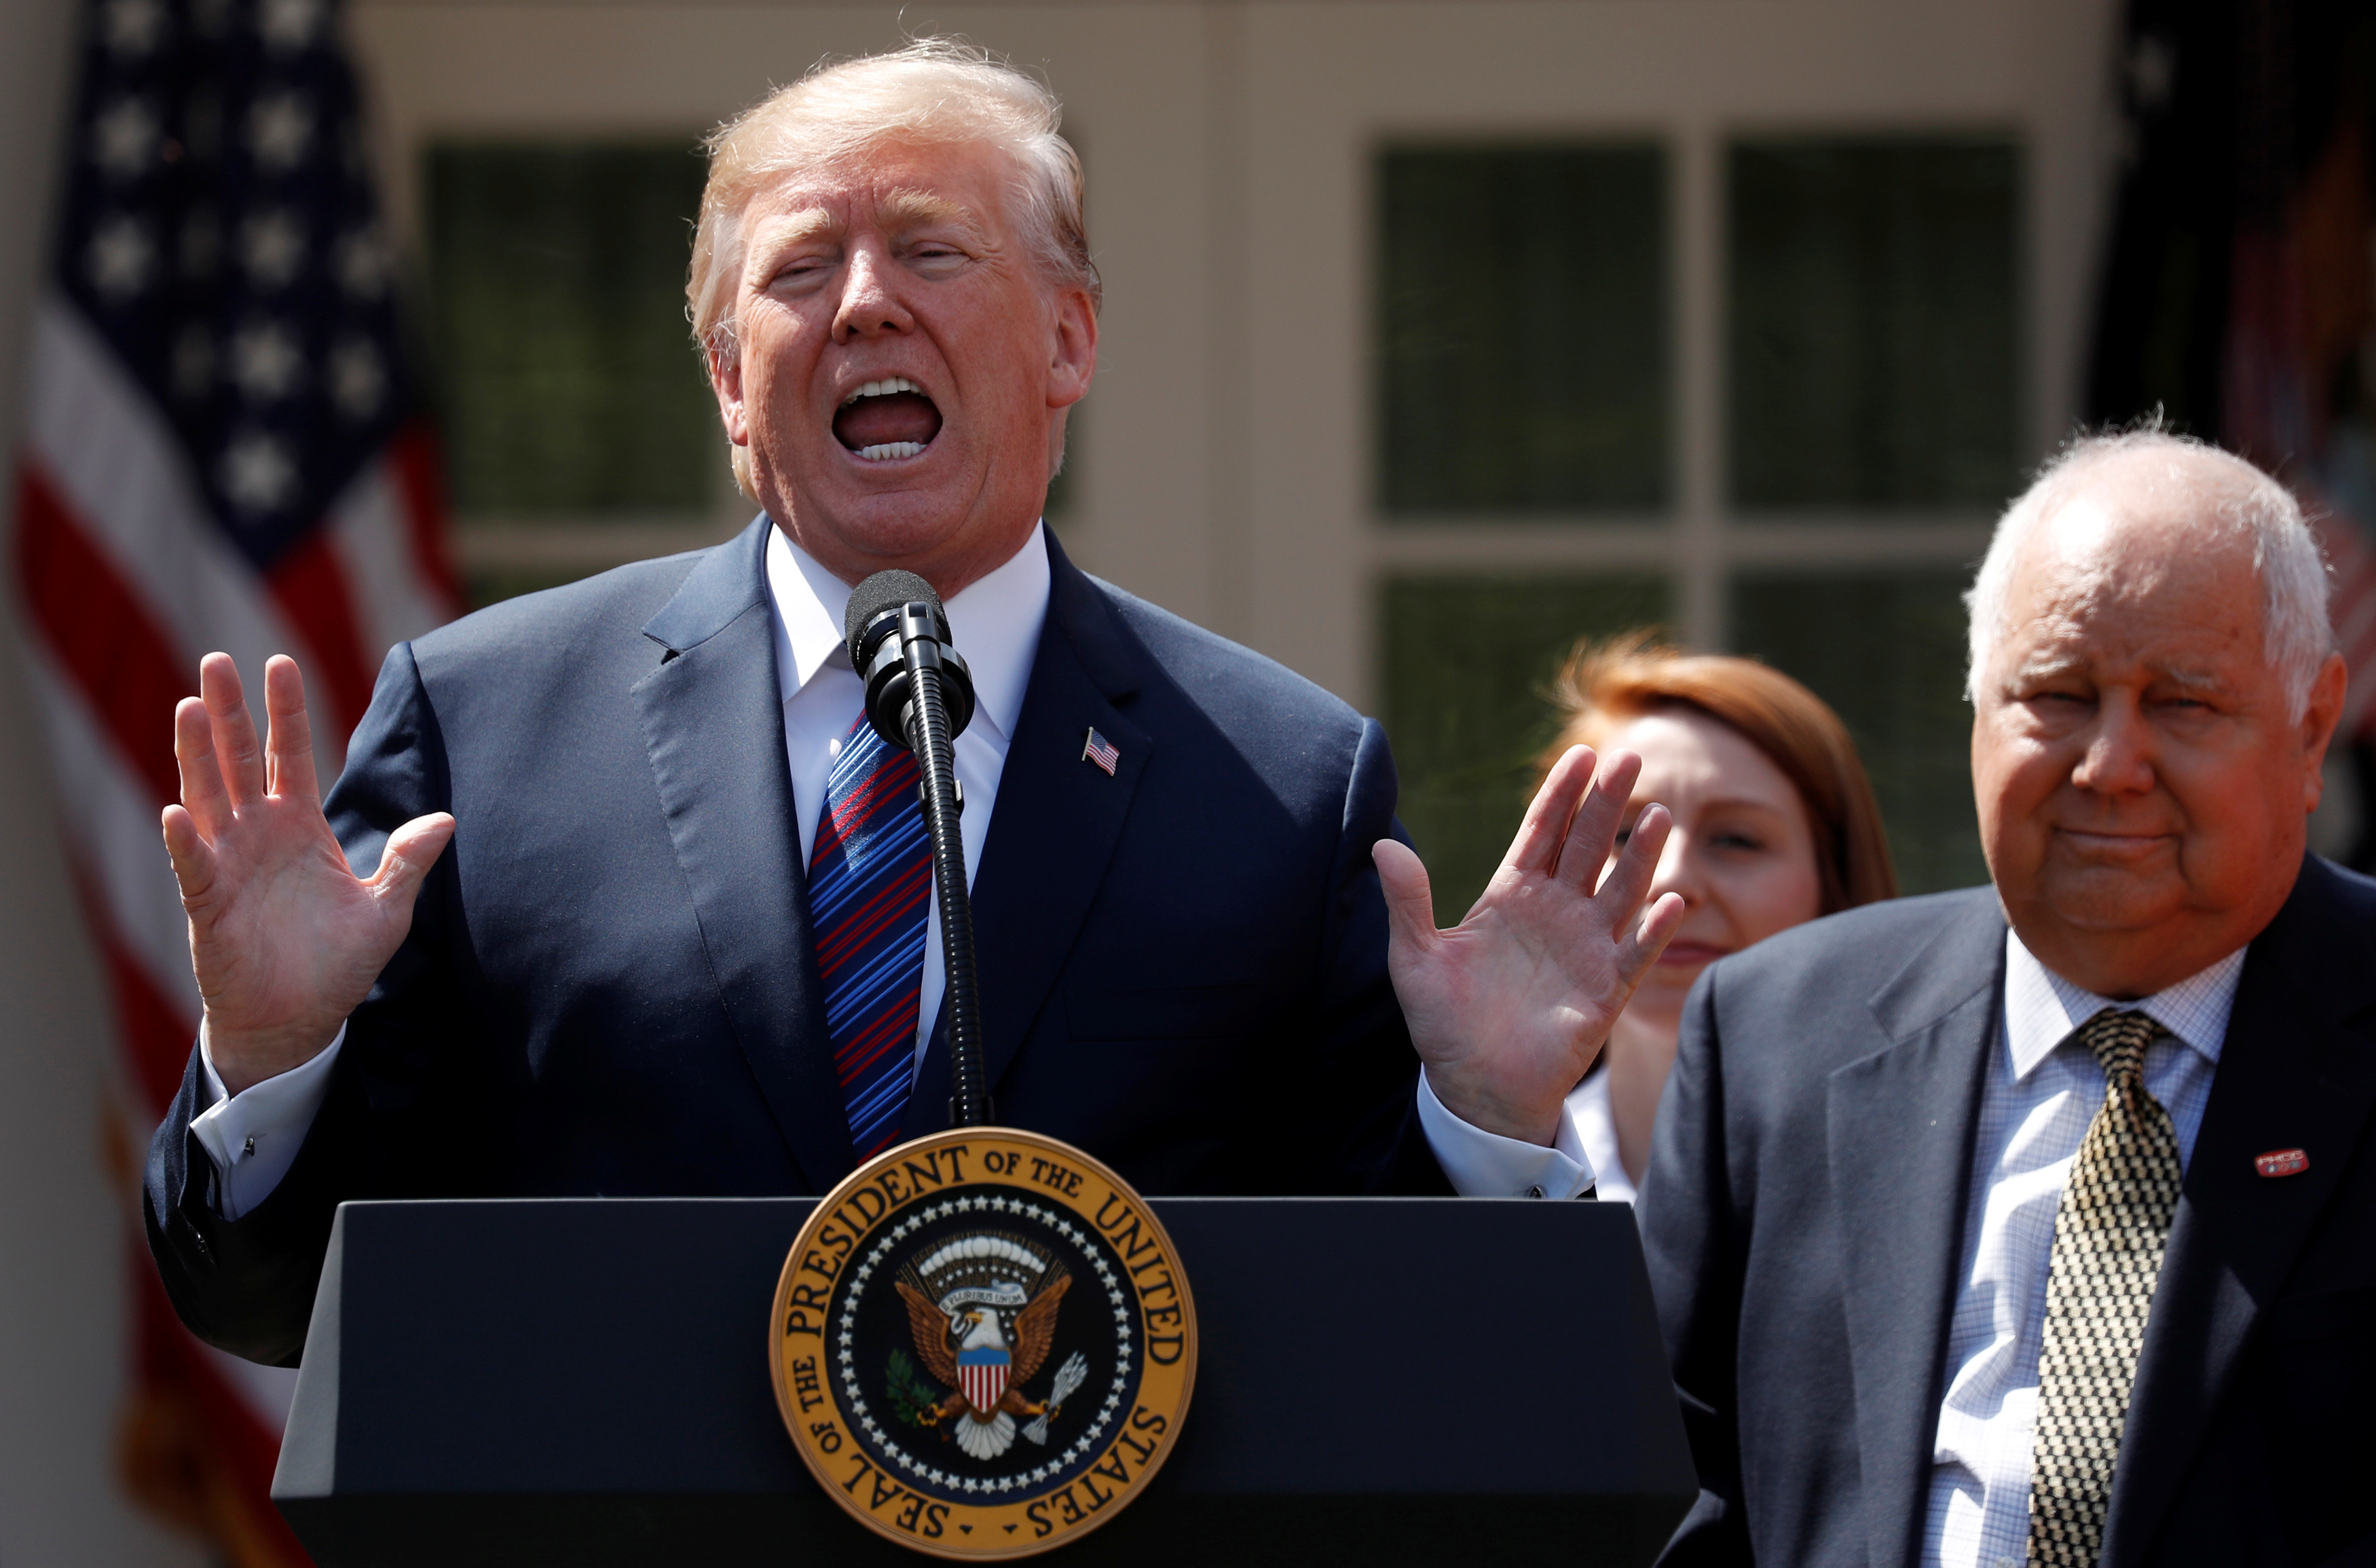 U.S. President Donald Trump gives remarks on tax cuts for American workers as Richard Kerzetski of Universal Plumbing, North Las Vegas, Nevada, listens during an event in the White House Rose Garden in Washington, U.S., April 12, 2018. REUTERS/Kevin Lamarque/File Photo - RC1E3CD3EA20